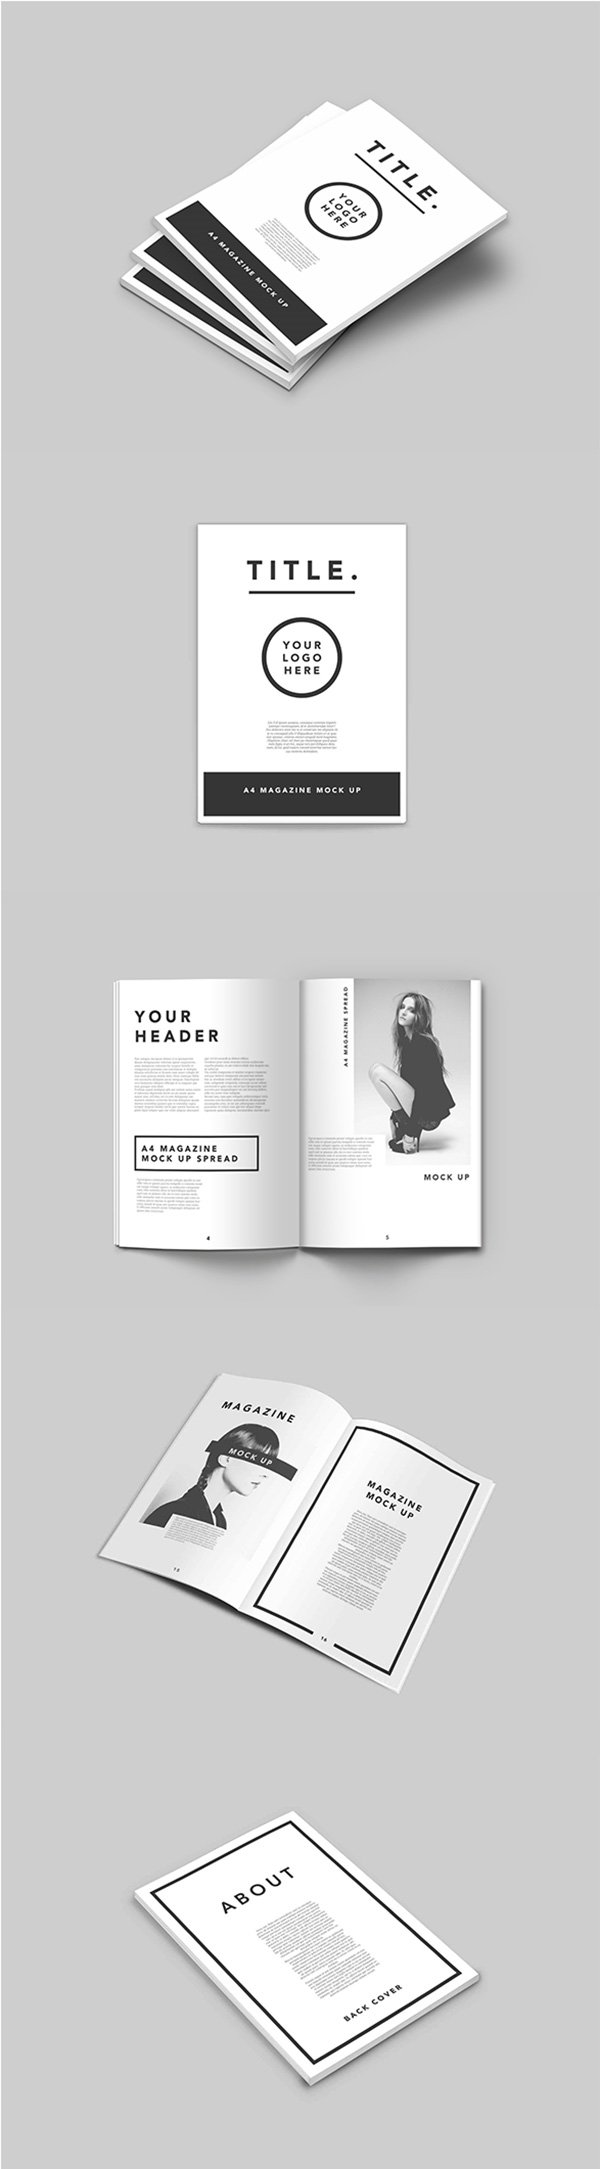 brochure mockup template free - 75 free psd magazine book cover brochure mock ups